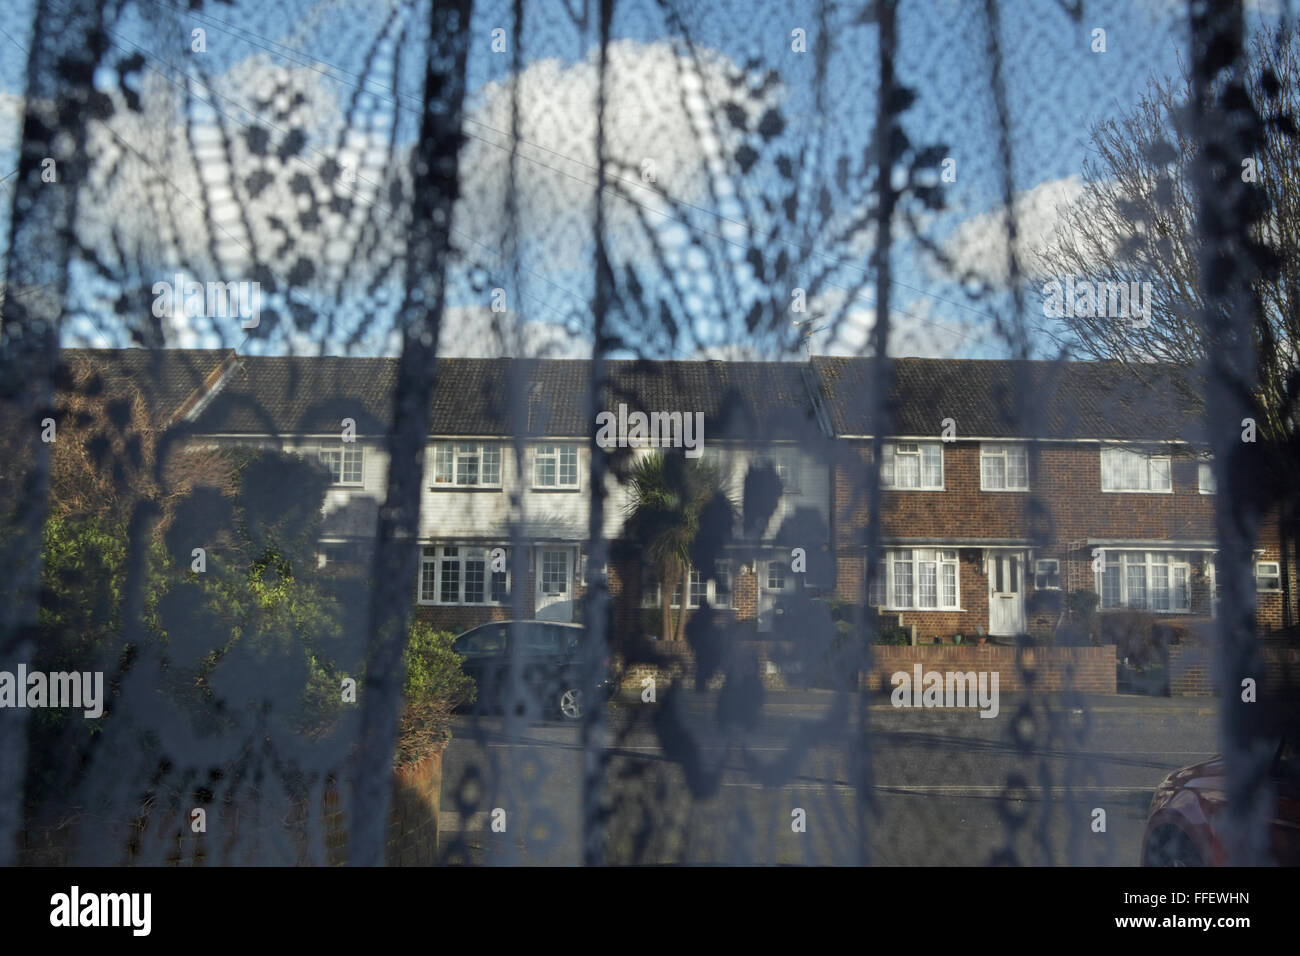 View of houses across a street through a window with a patterned net curtain - Stock Image